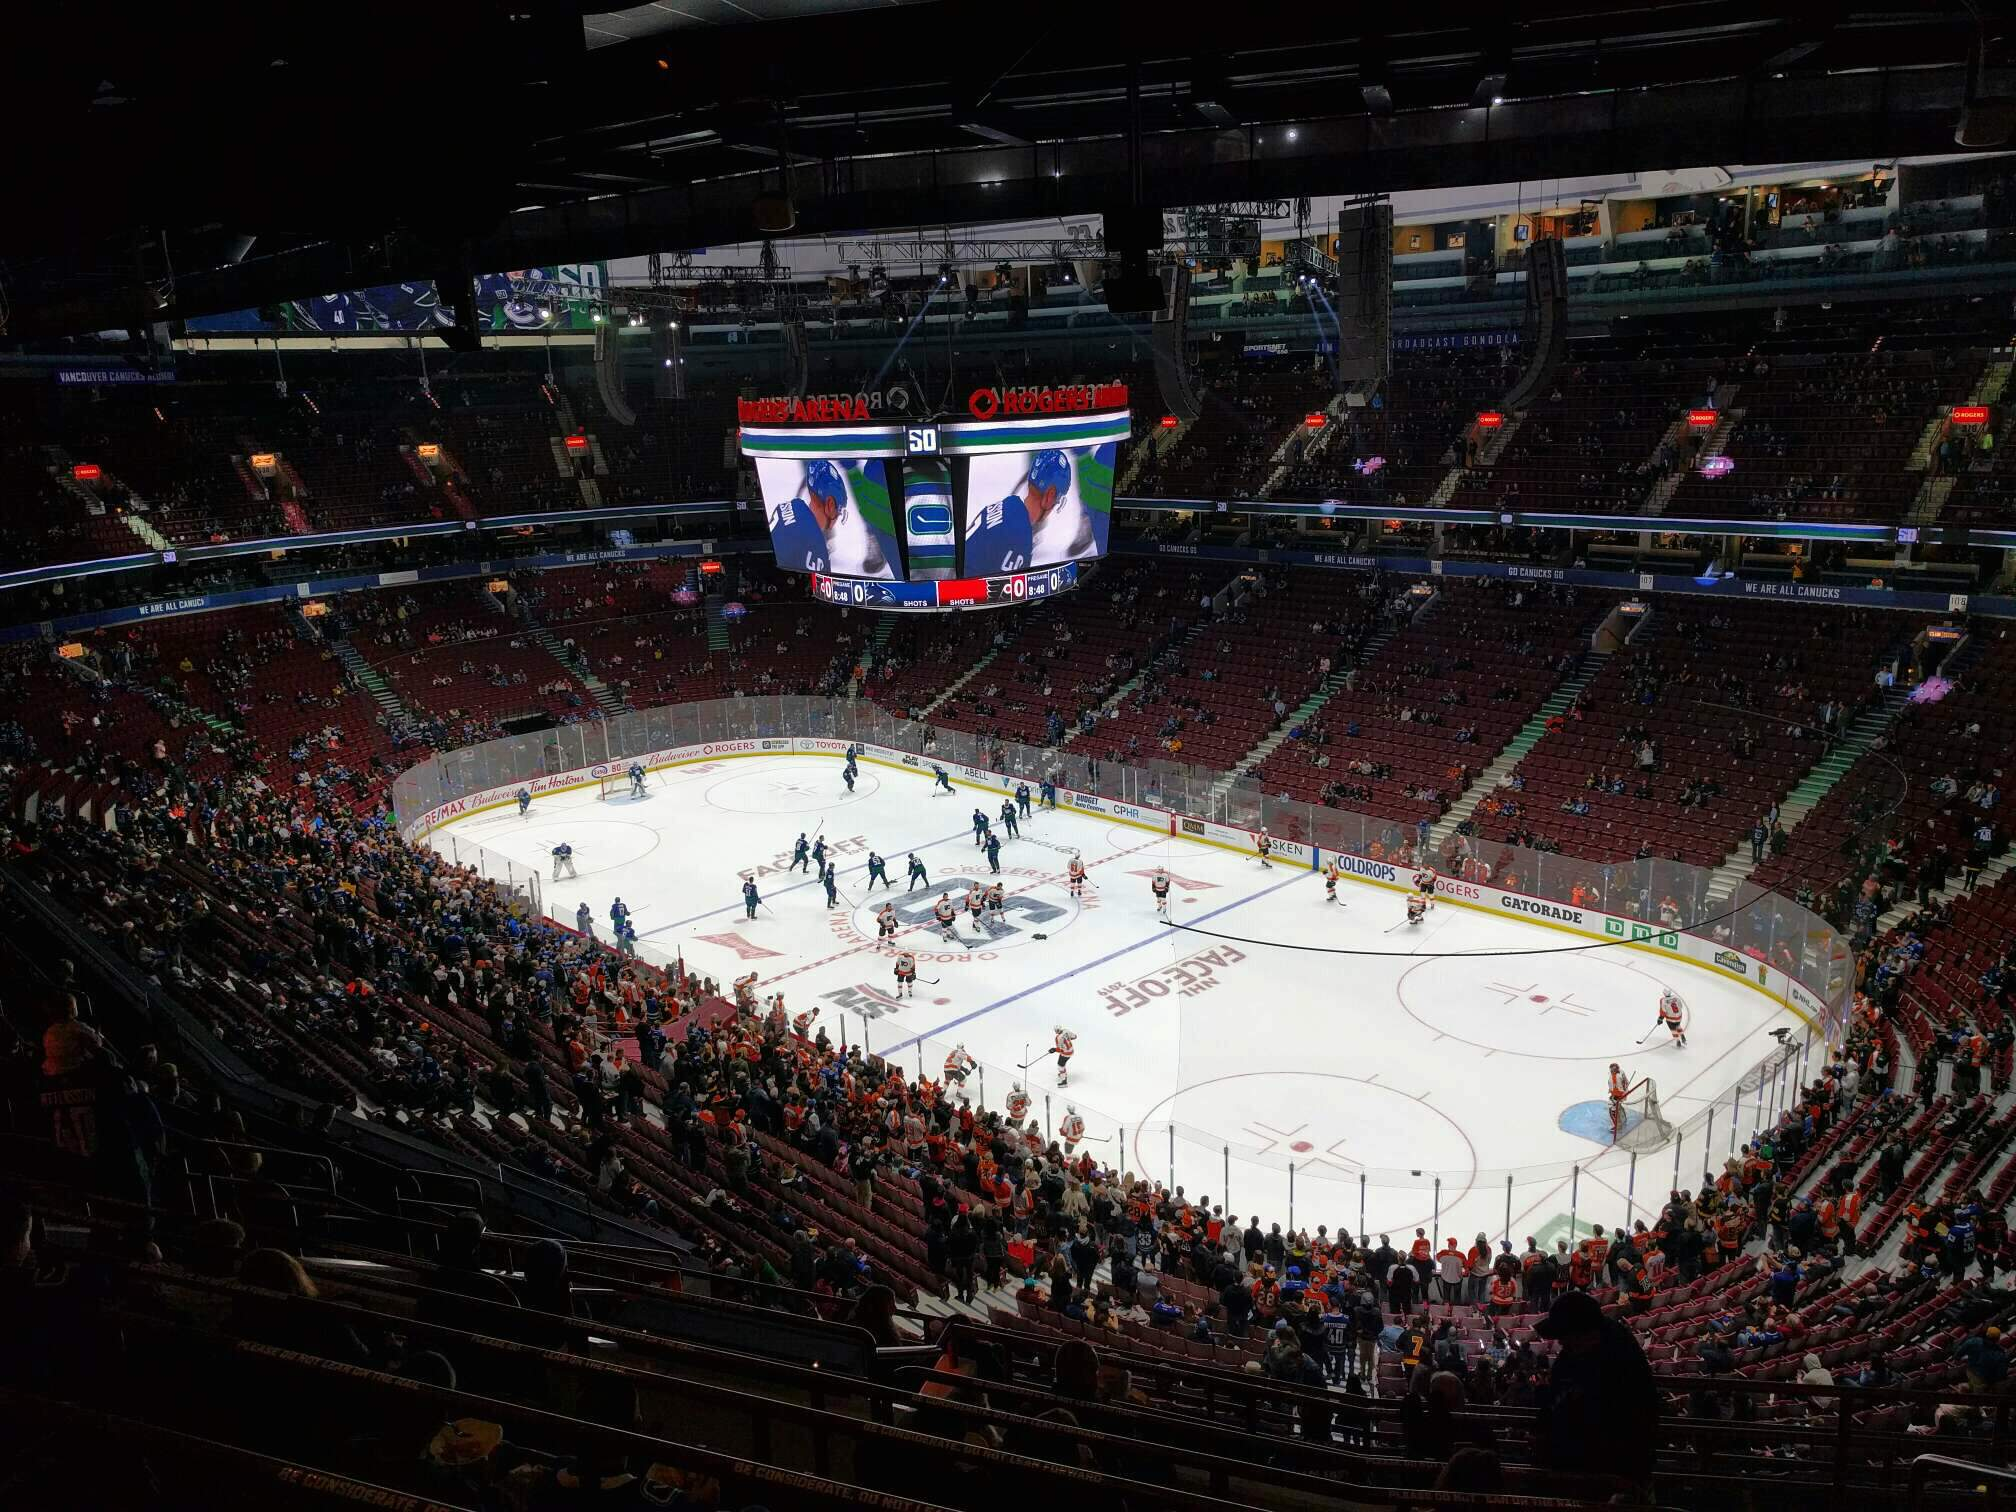 Rogers Arena Section 319 Row 13 Seat 106